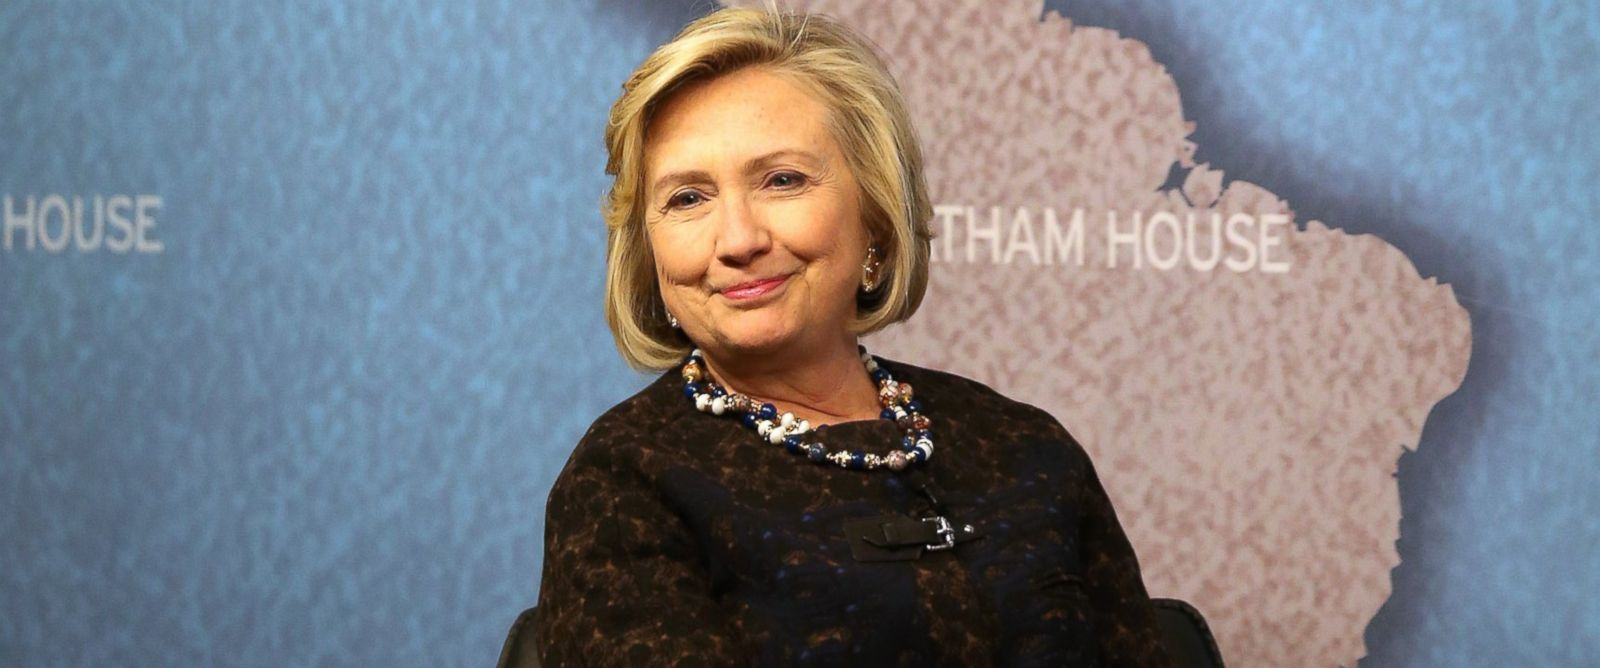 PHOTO: Former Secretary of State Hillary Clinton waits to answer questions from an audience at Chatham House on Oct. 11, 2013 in London, England.